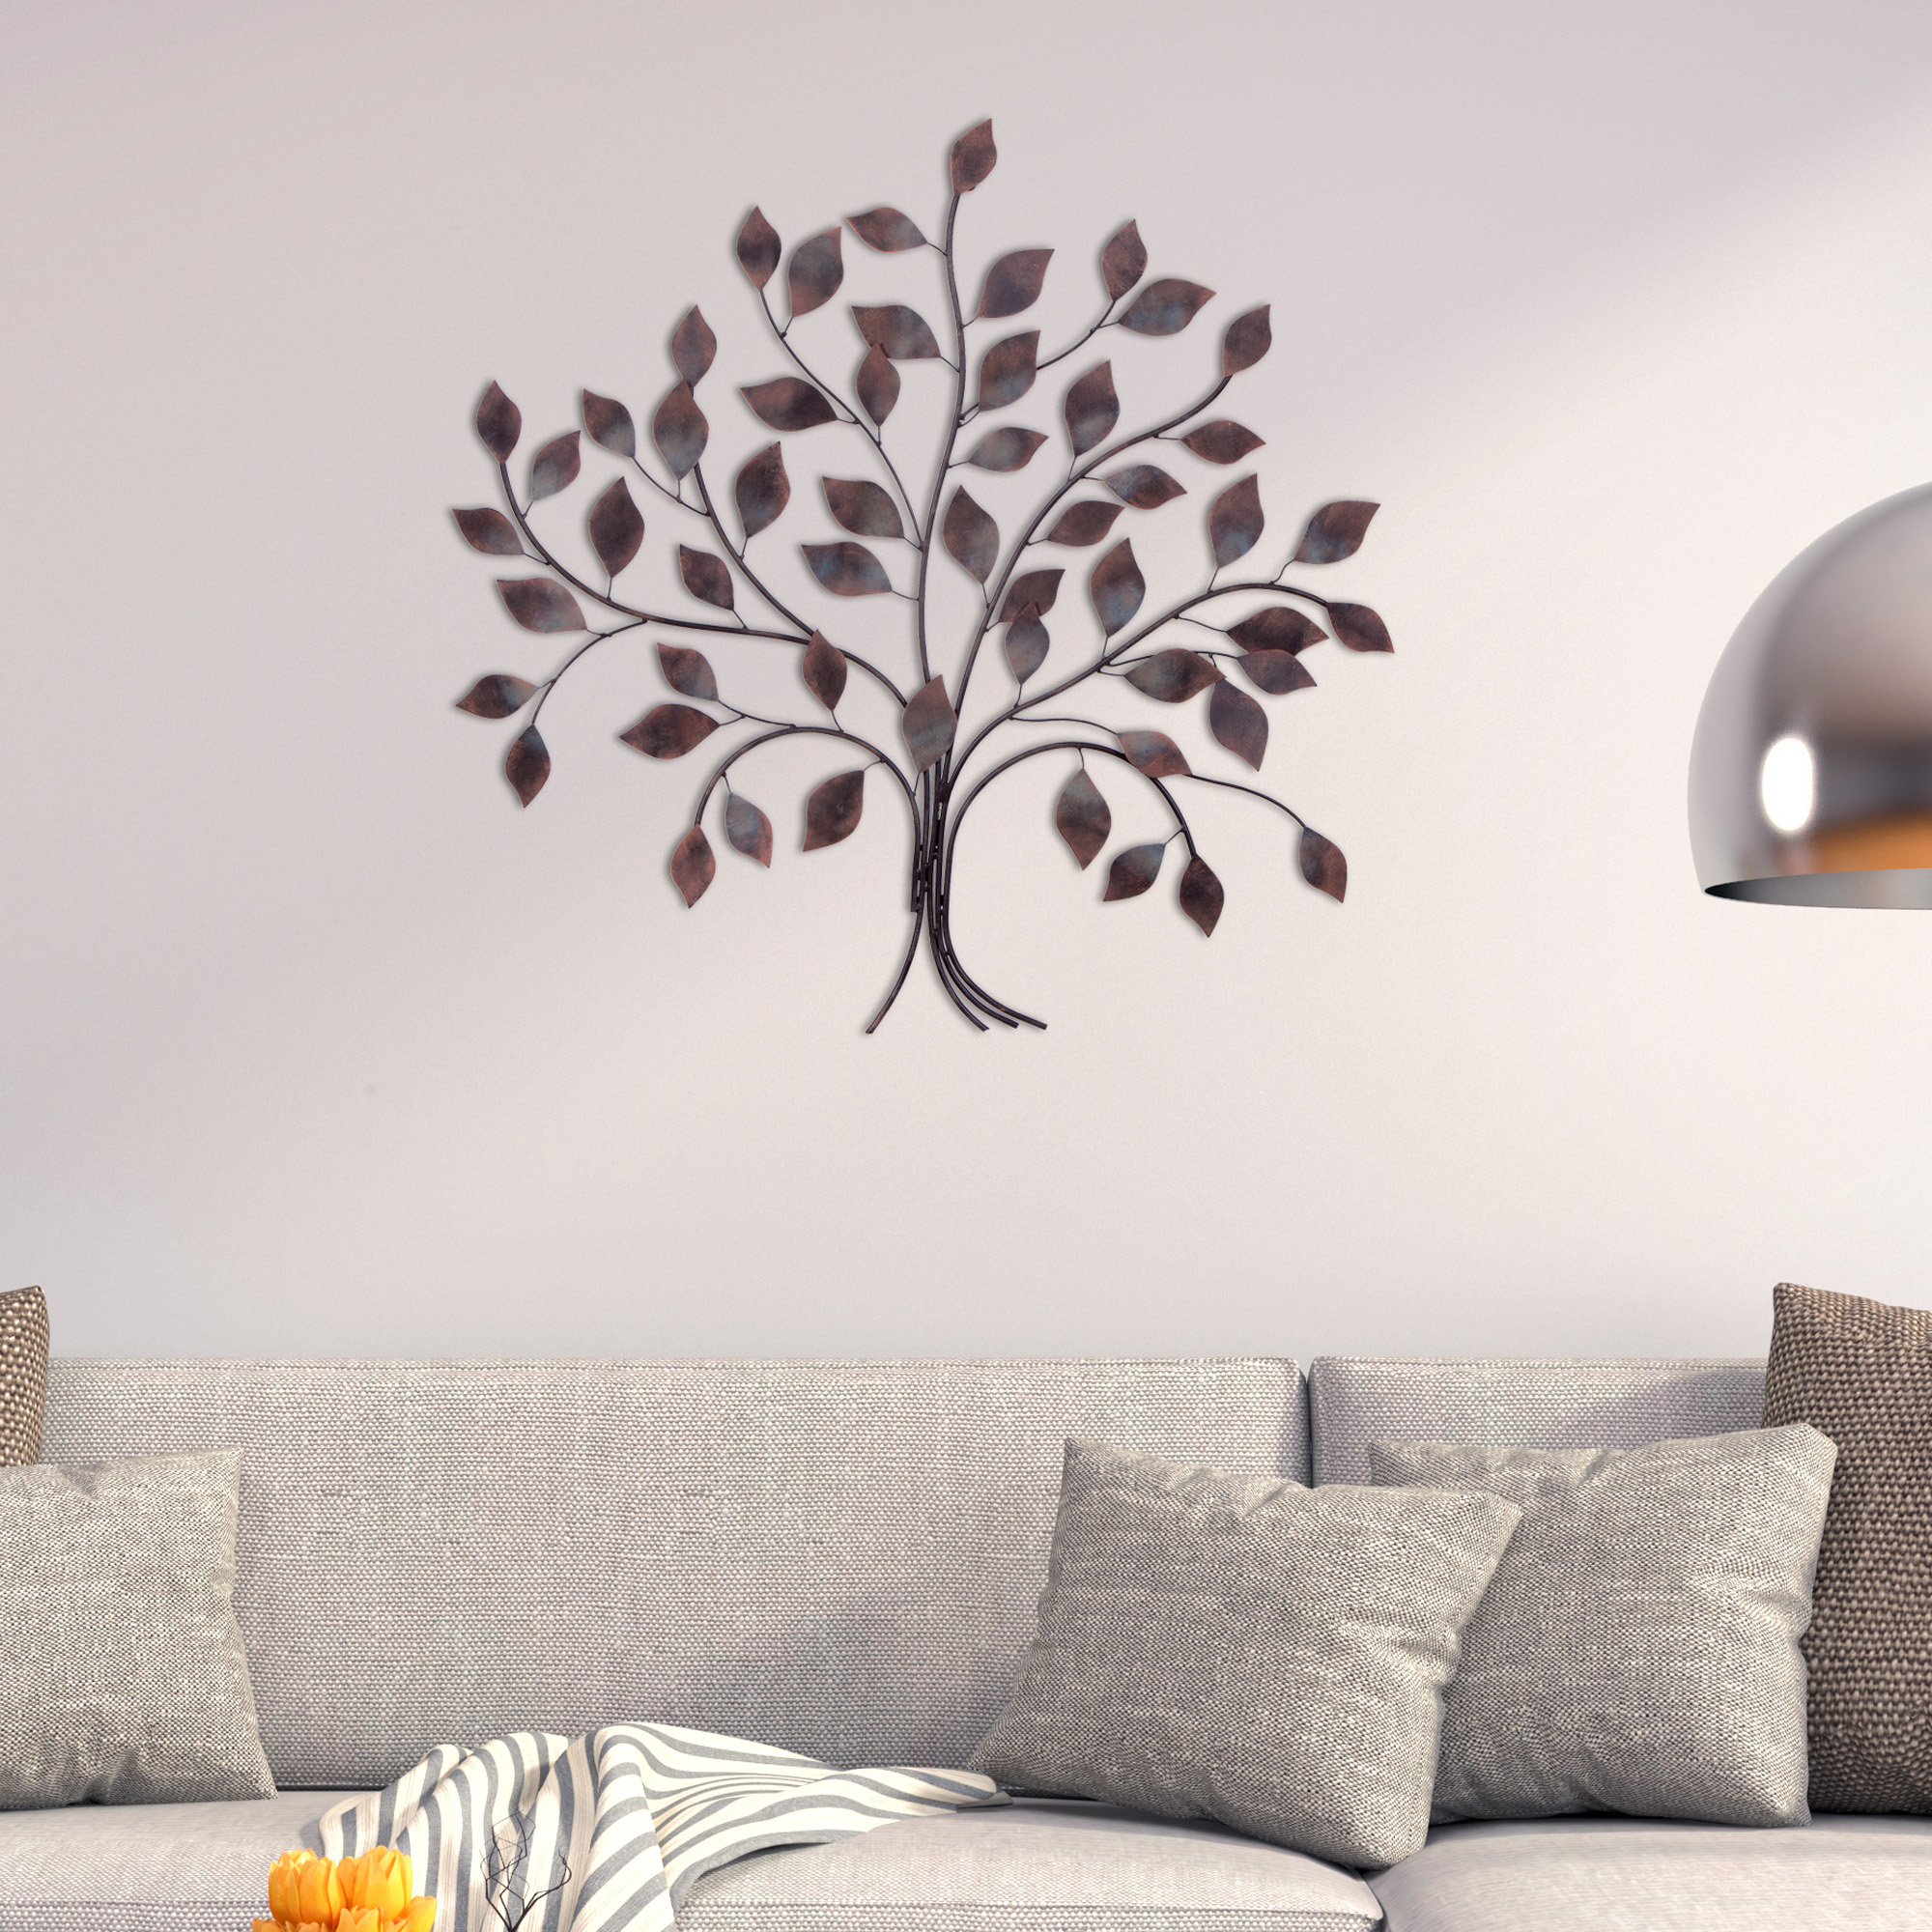 Well Liked Tree Wall Decor Inside Patton Wall Decor Bronze Tree Branch Decorative Metal Wall Décor (View 19 of 20)